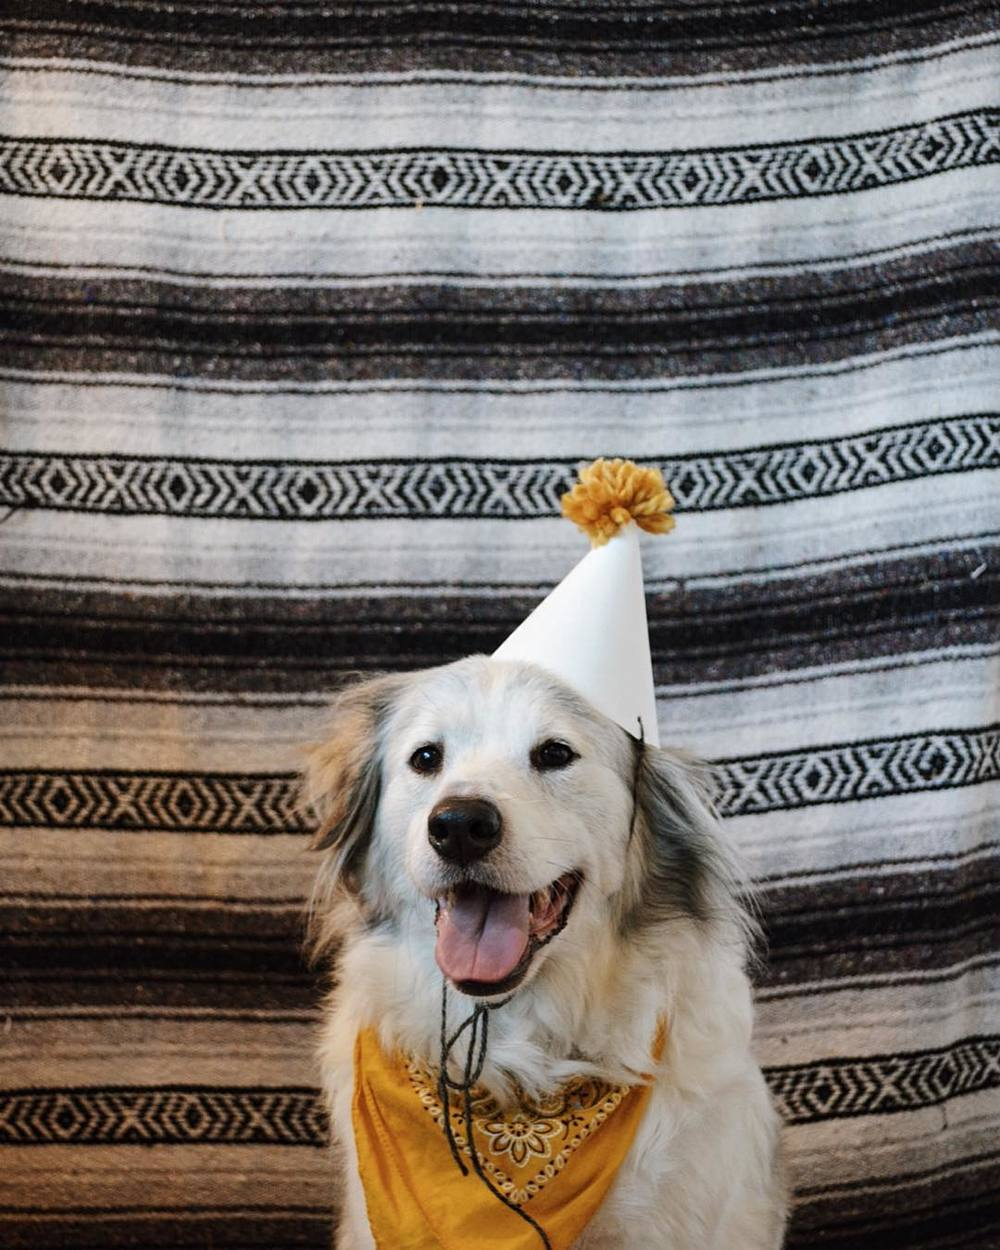 Dogs and birthdays by @Lynzi.